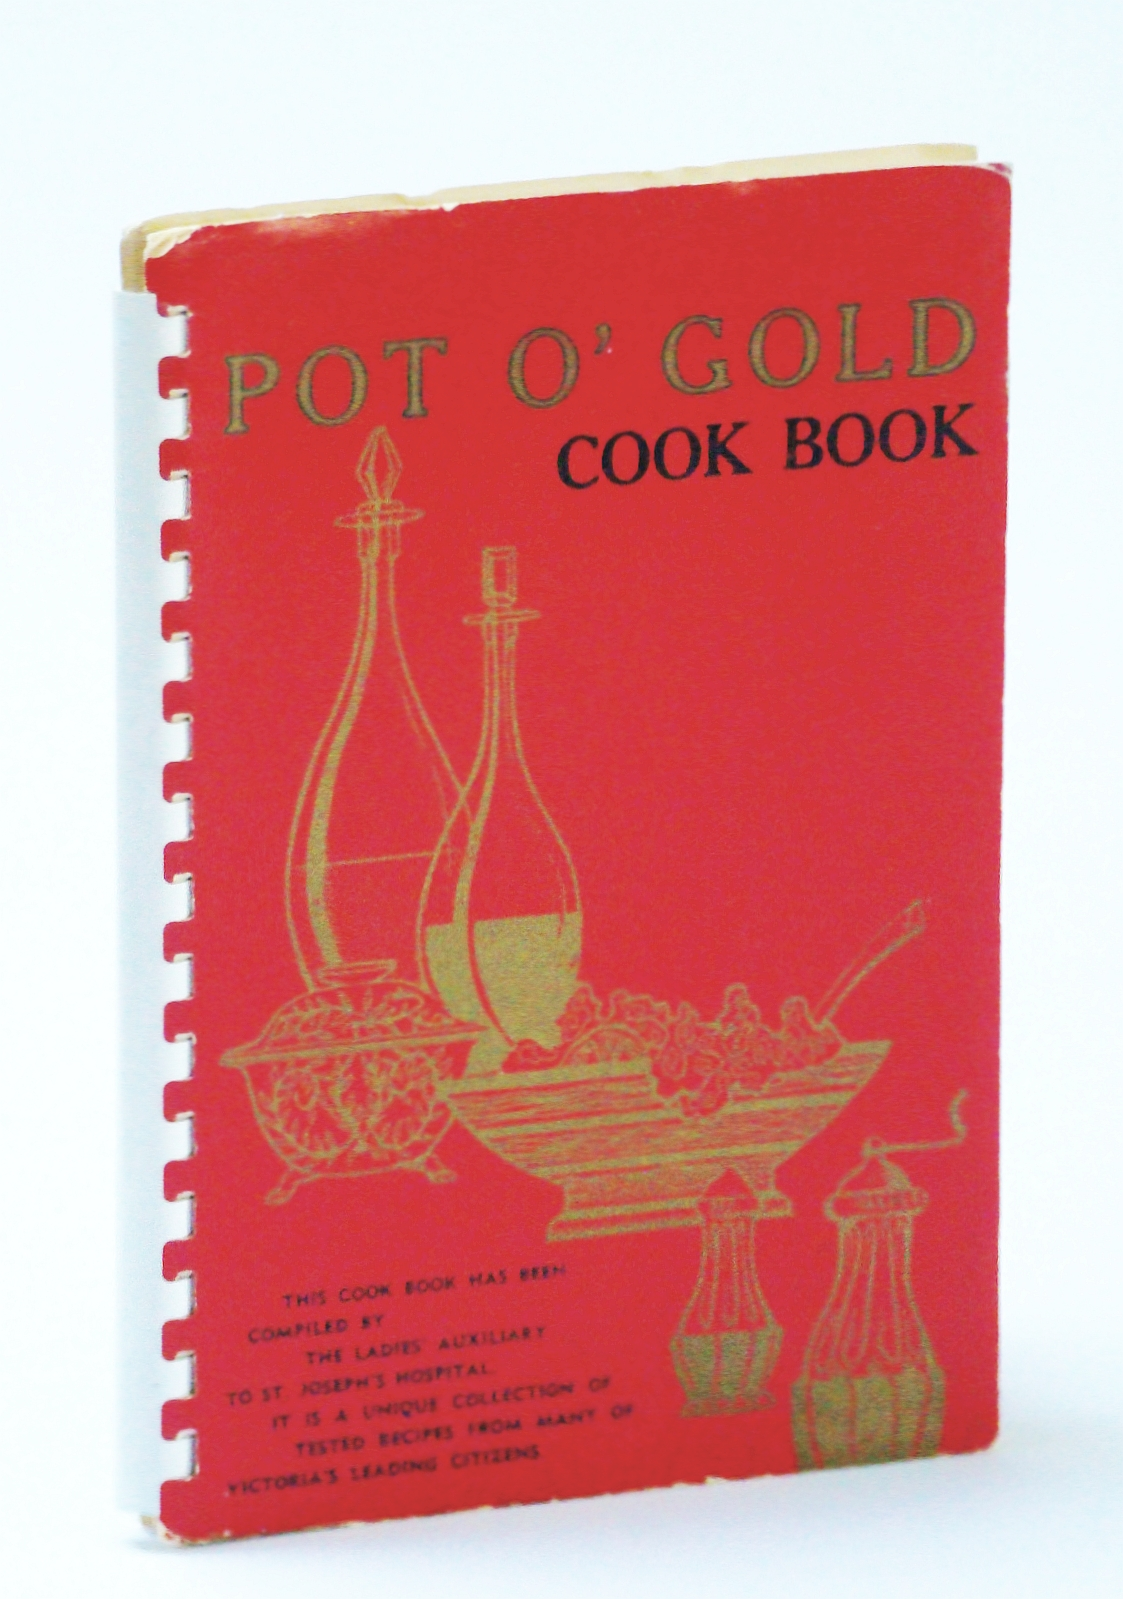 Image for Pot O' Gold Cook Book (Cookbook)